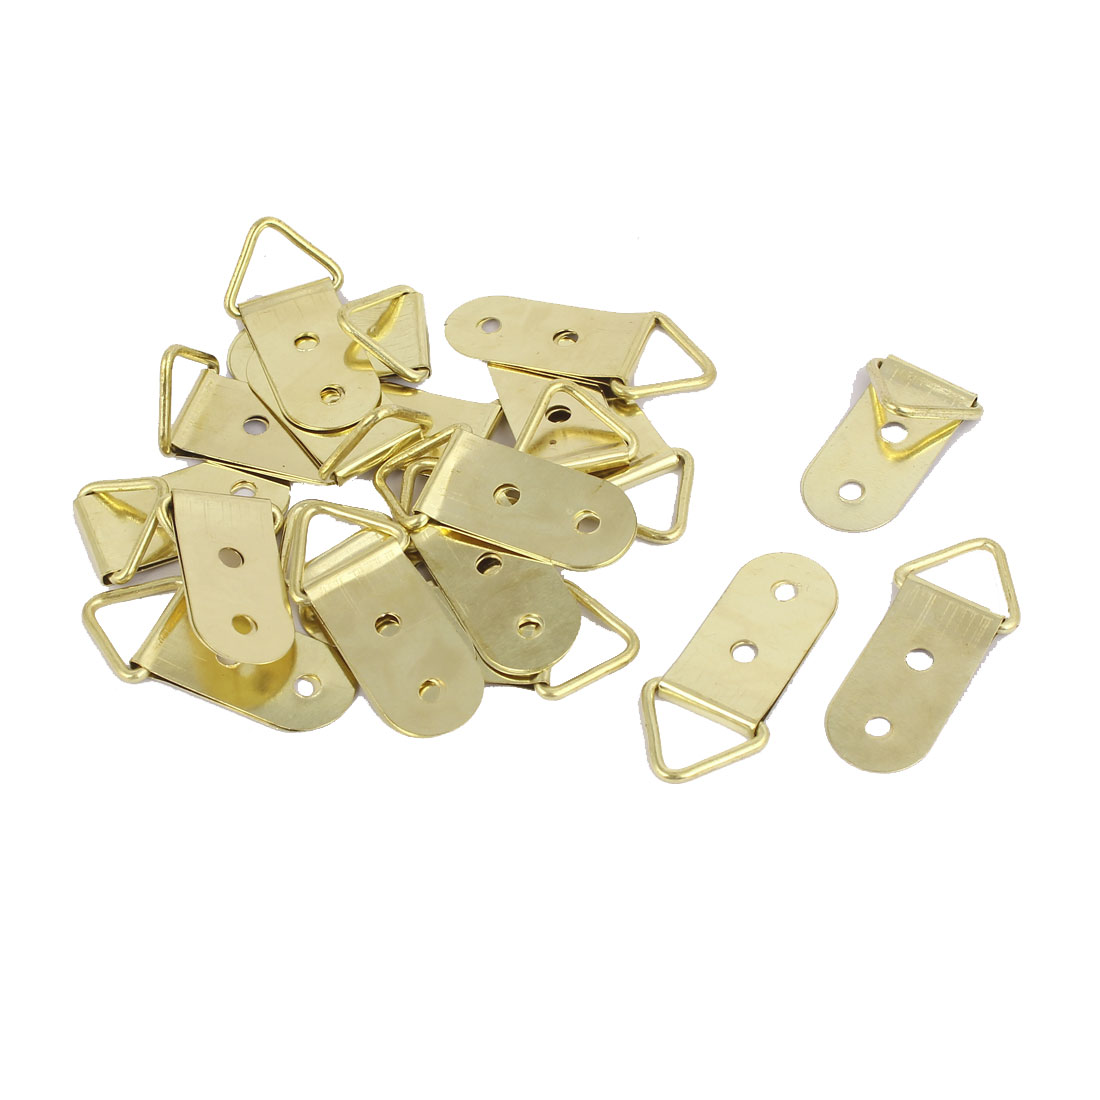 40mm x 18mm Triangle D-Ring Picture Photo Frame Strap Hanging Hangers 20PCS